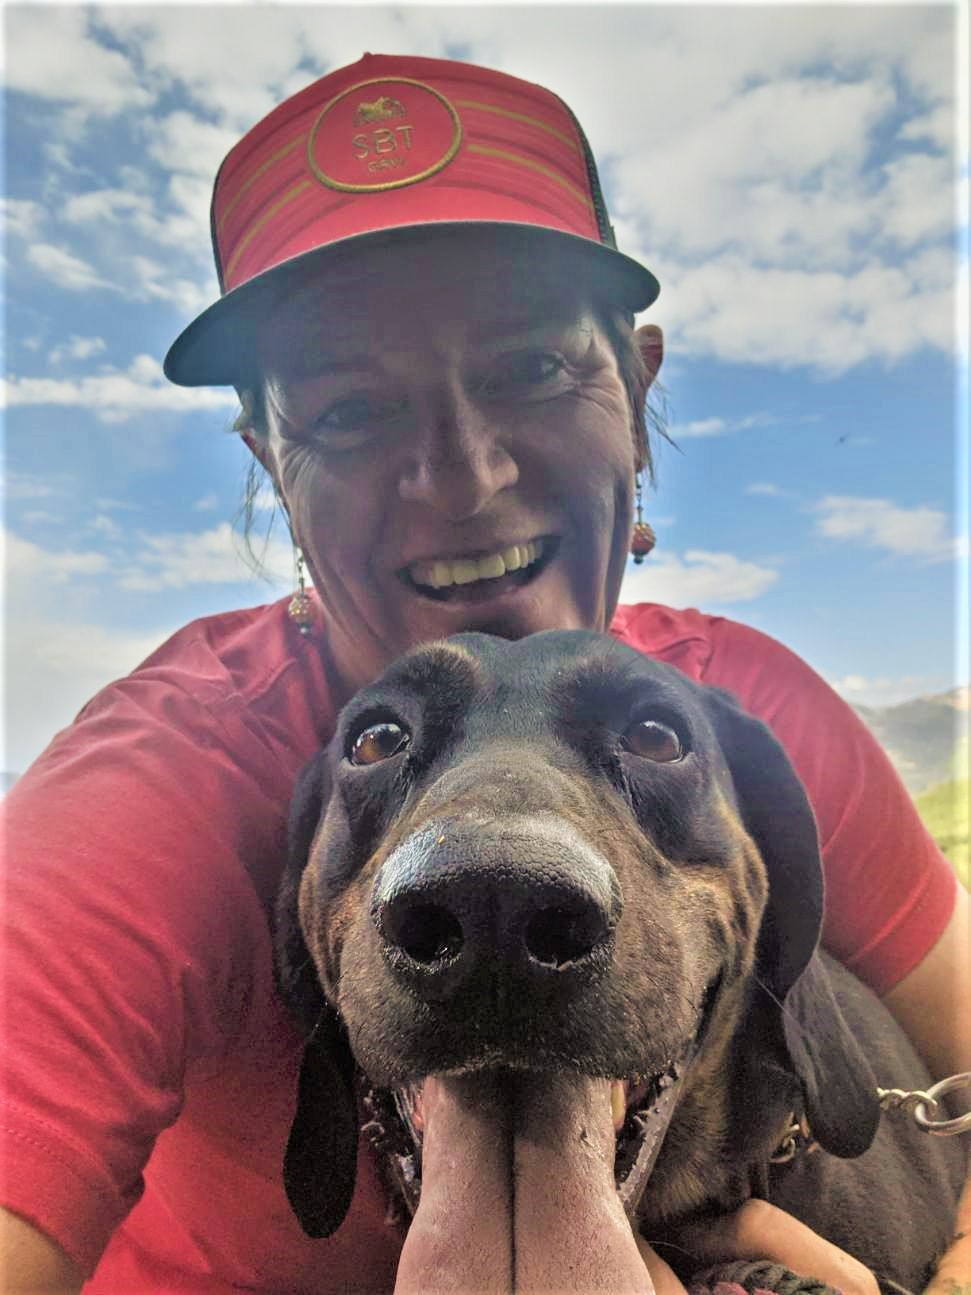 Wild Bunch Desert Guides Laurel Darren smiles widely while hugging her Plott Hound Daisy Mae during a Lake City Hiking Club hike in the breathtaking surroundings of Colorado's San Juan Mountains.